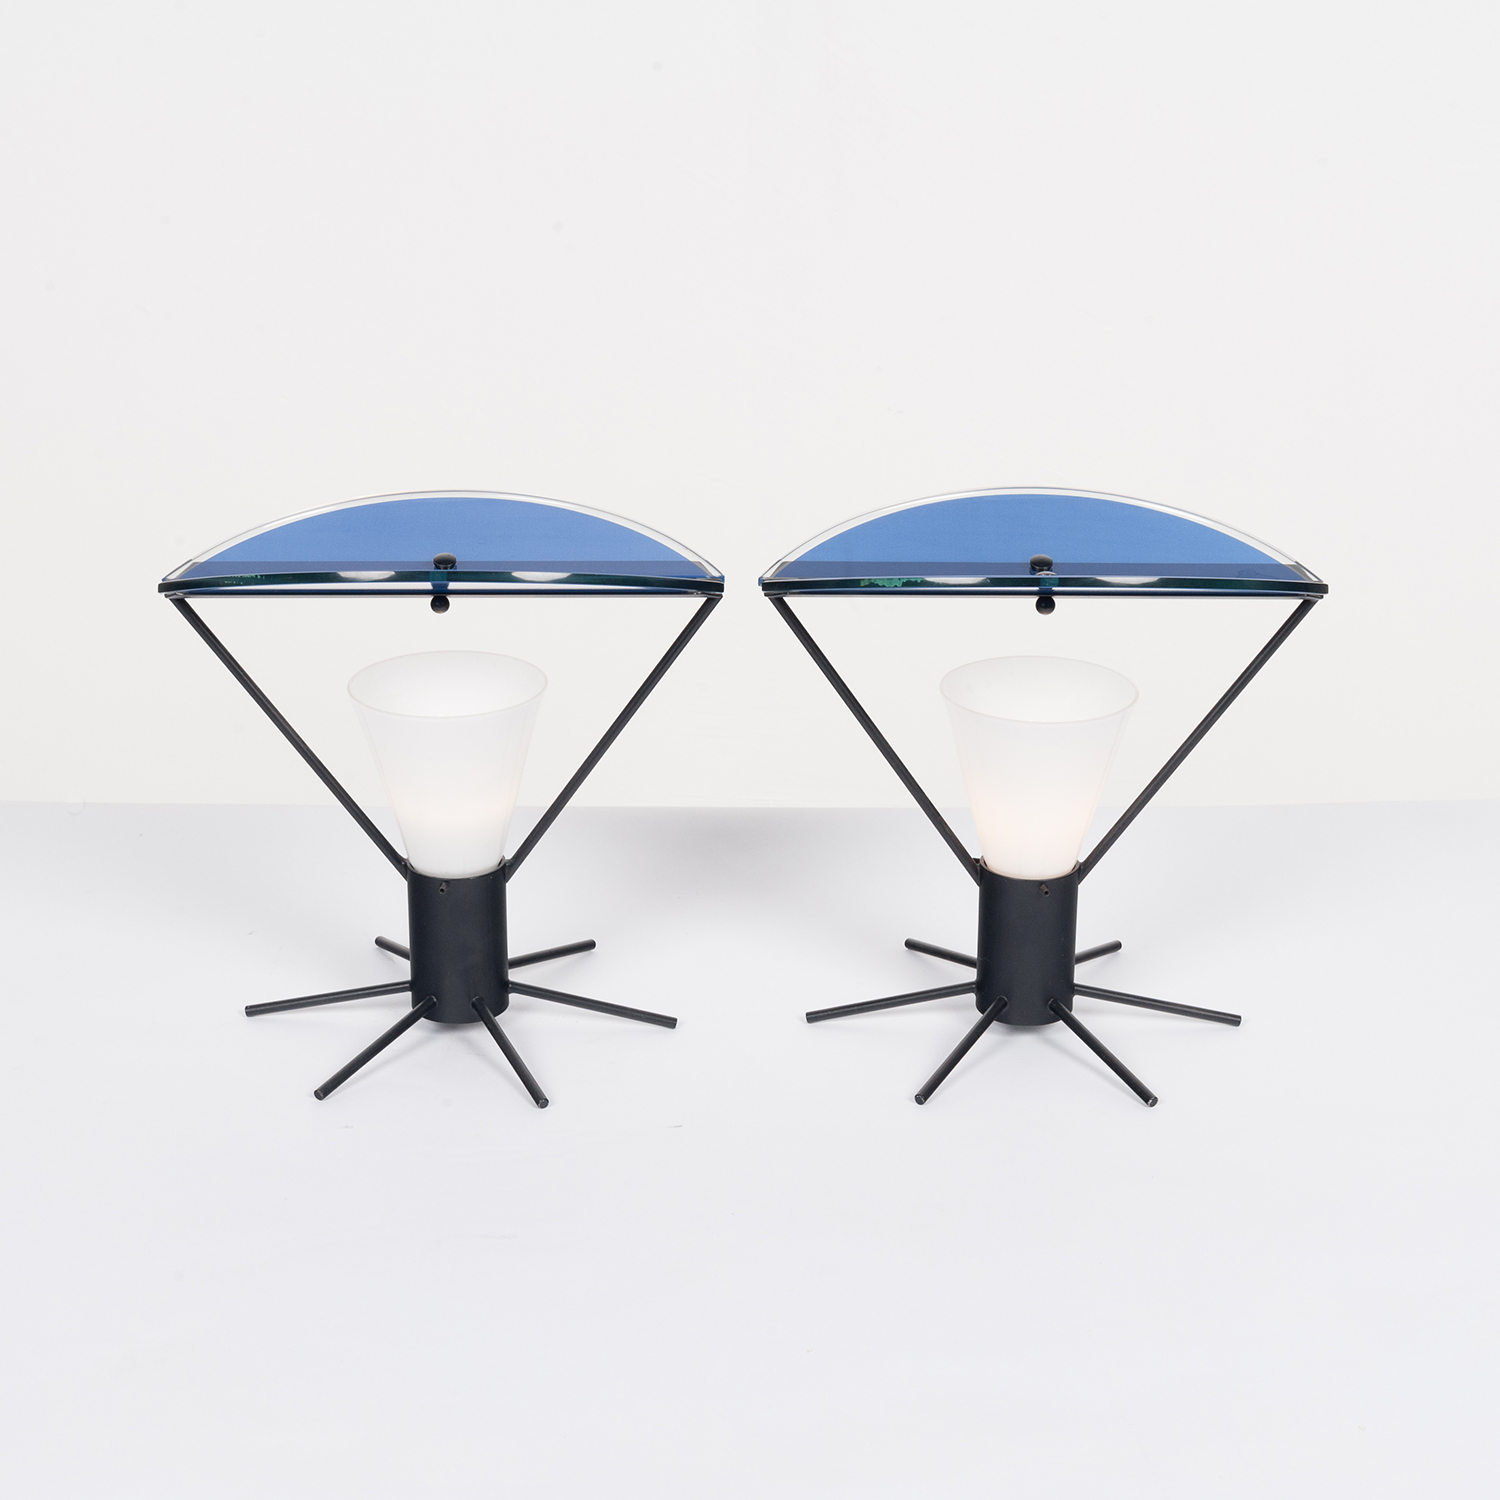 Pair Of Memphis Style Table Lamps In Murano Glass, 1980s, Italy 23